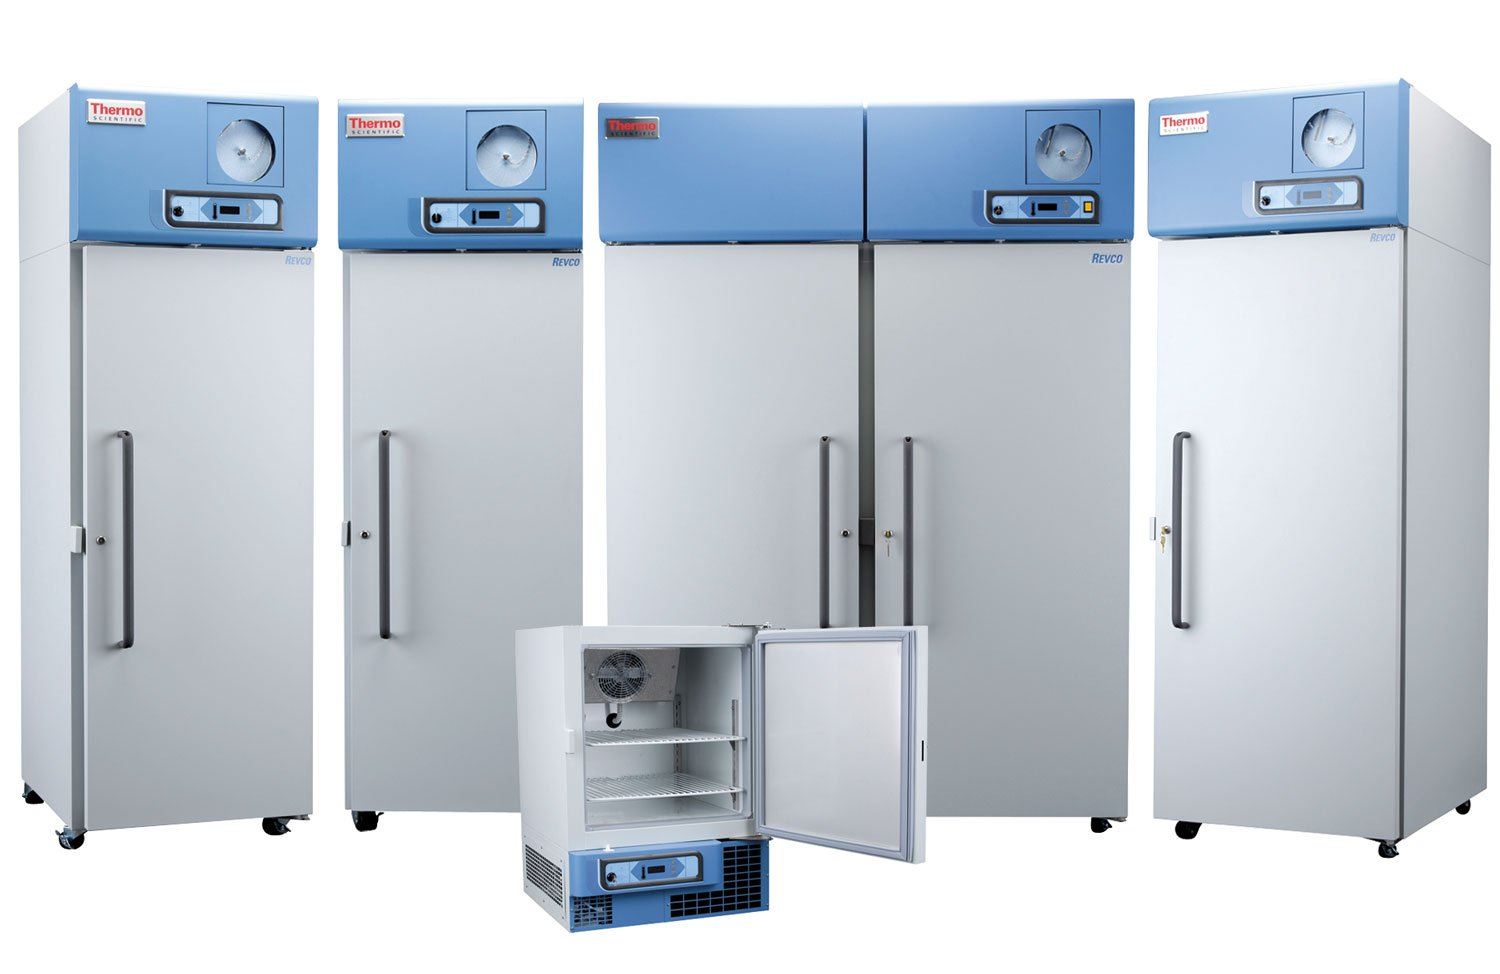 Complete line of Revco Plasma Freezers by Thermo Fisher Scientific for Regulated Labs